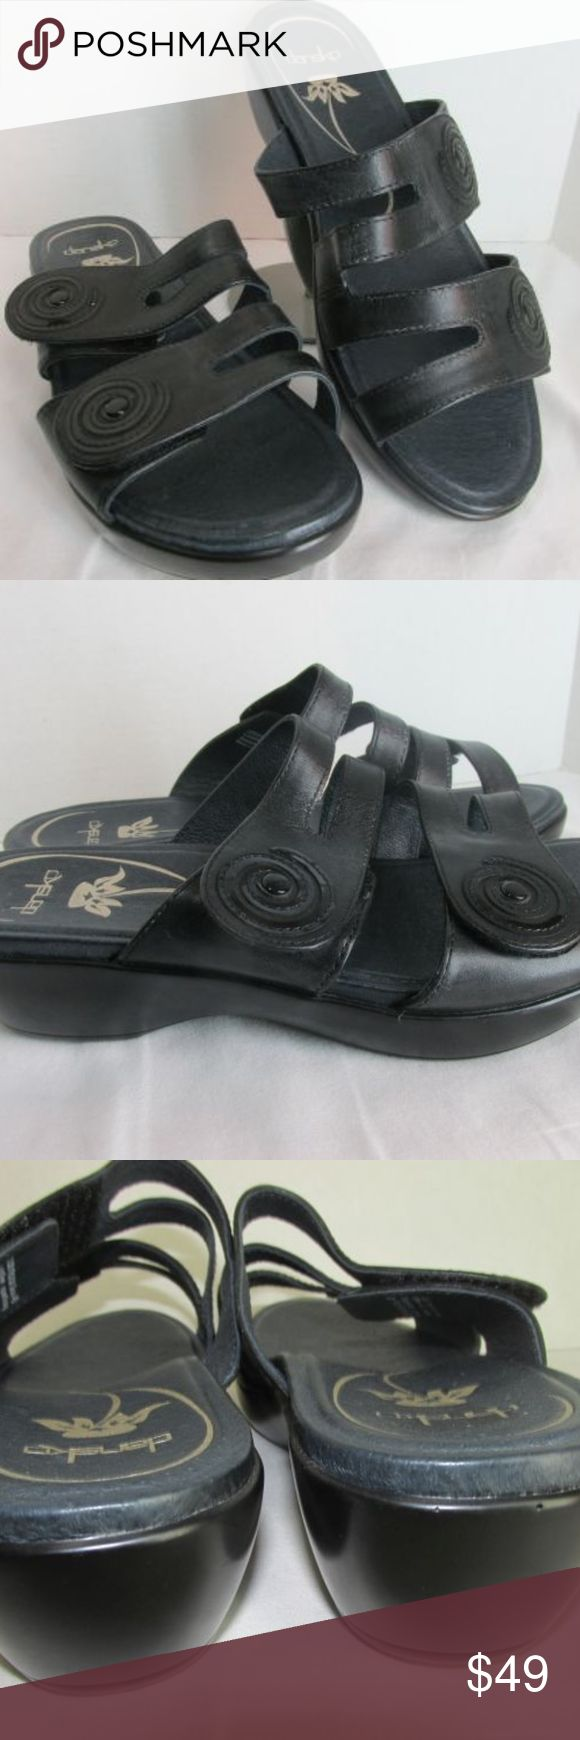 """Dansko Black Leather Dixie Sandals Wedges 40 9.5 Black leather uppers, padded insoles. Platform front with wedge heel. Strappy double upper with patent swirl flower detail, adjustable hook/loop tape close. Size 40 (9.5-10 US)   Length (insole tip of toe to back edge of heel cup) 9.75"""" Width (outersole at widest/ball) 3.5"""" Platform 1"""" Heel height 2""""  Excellent previously owned. Dansko Shoes Sandals"""